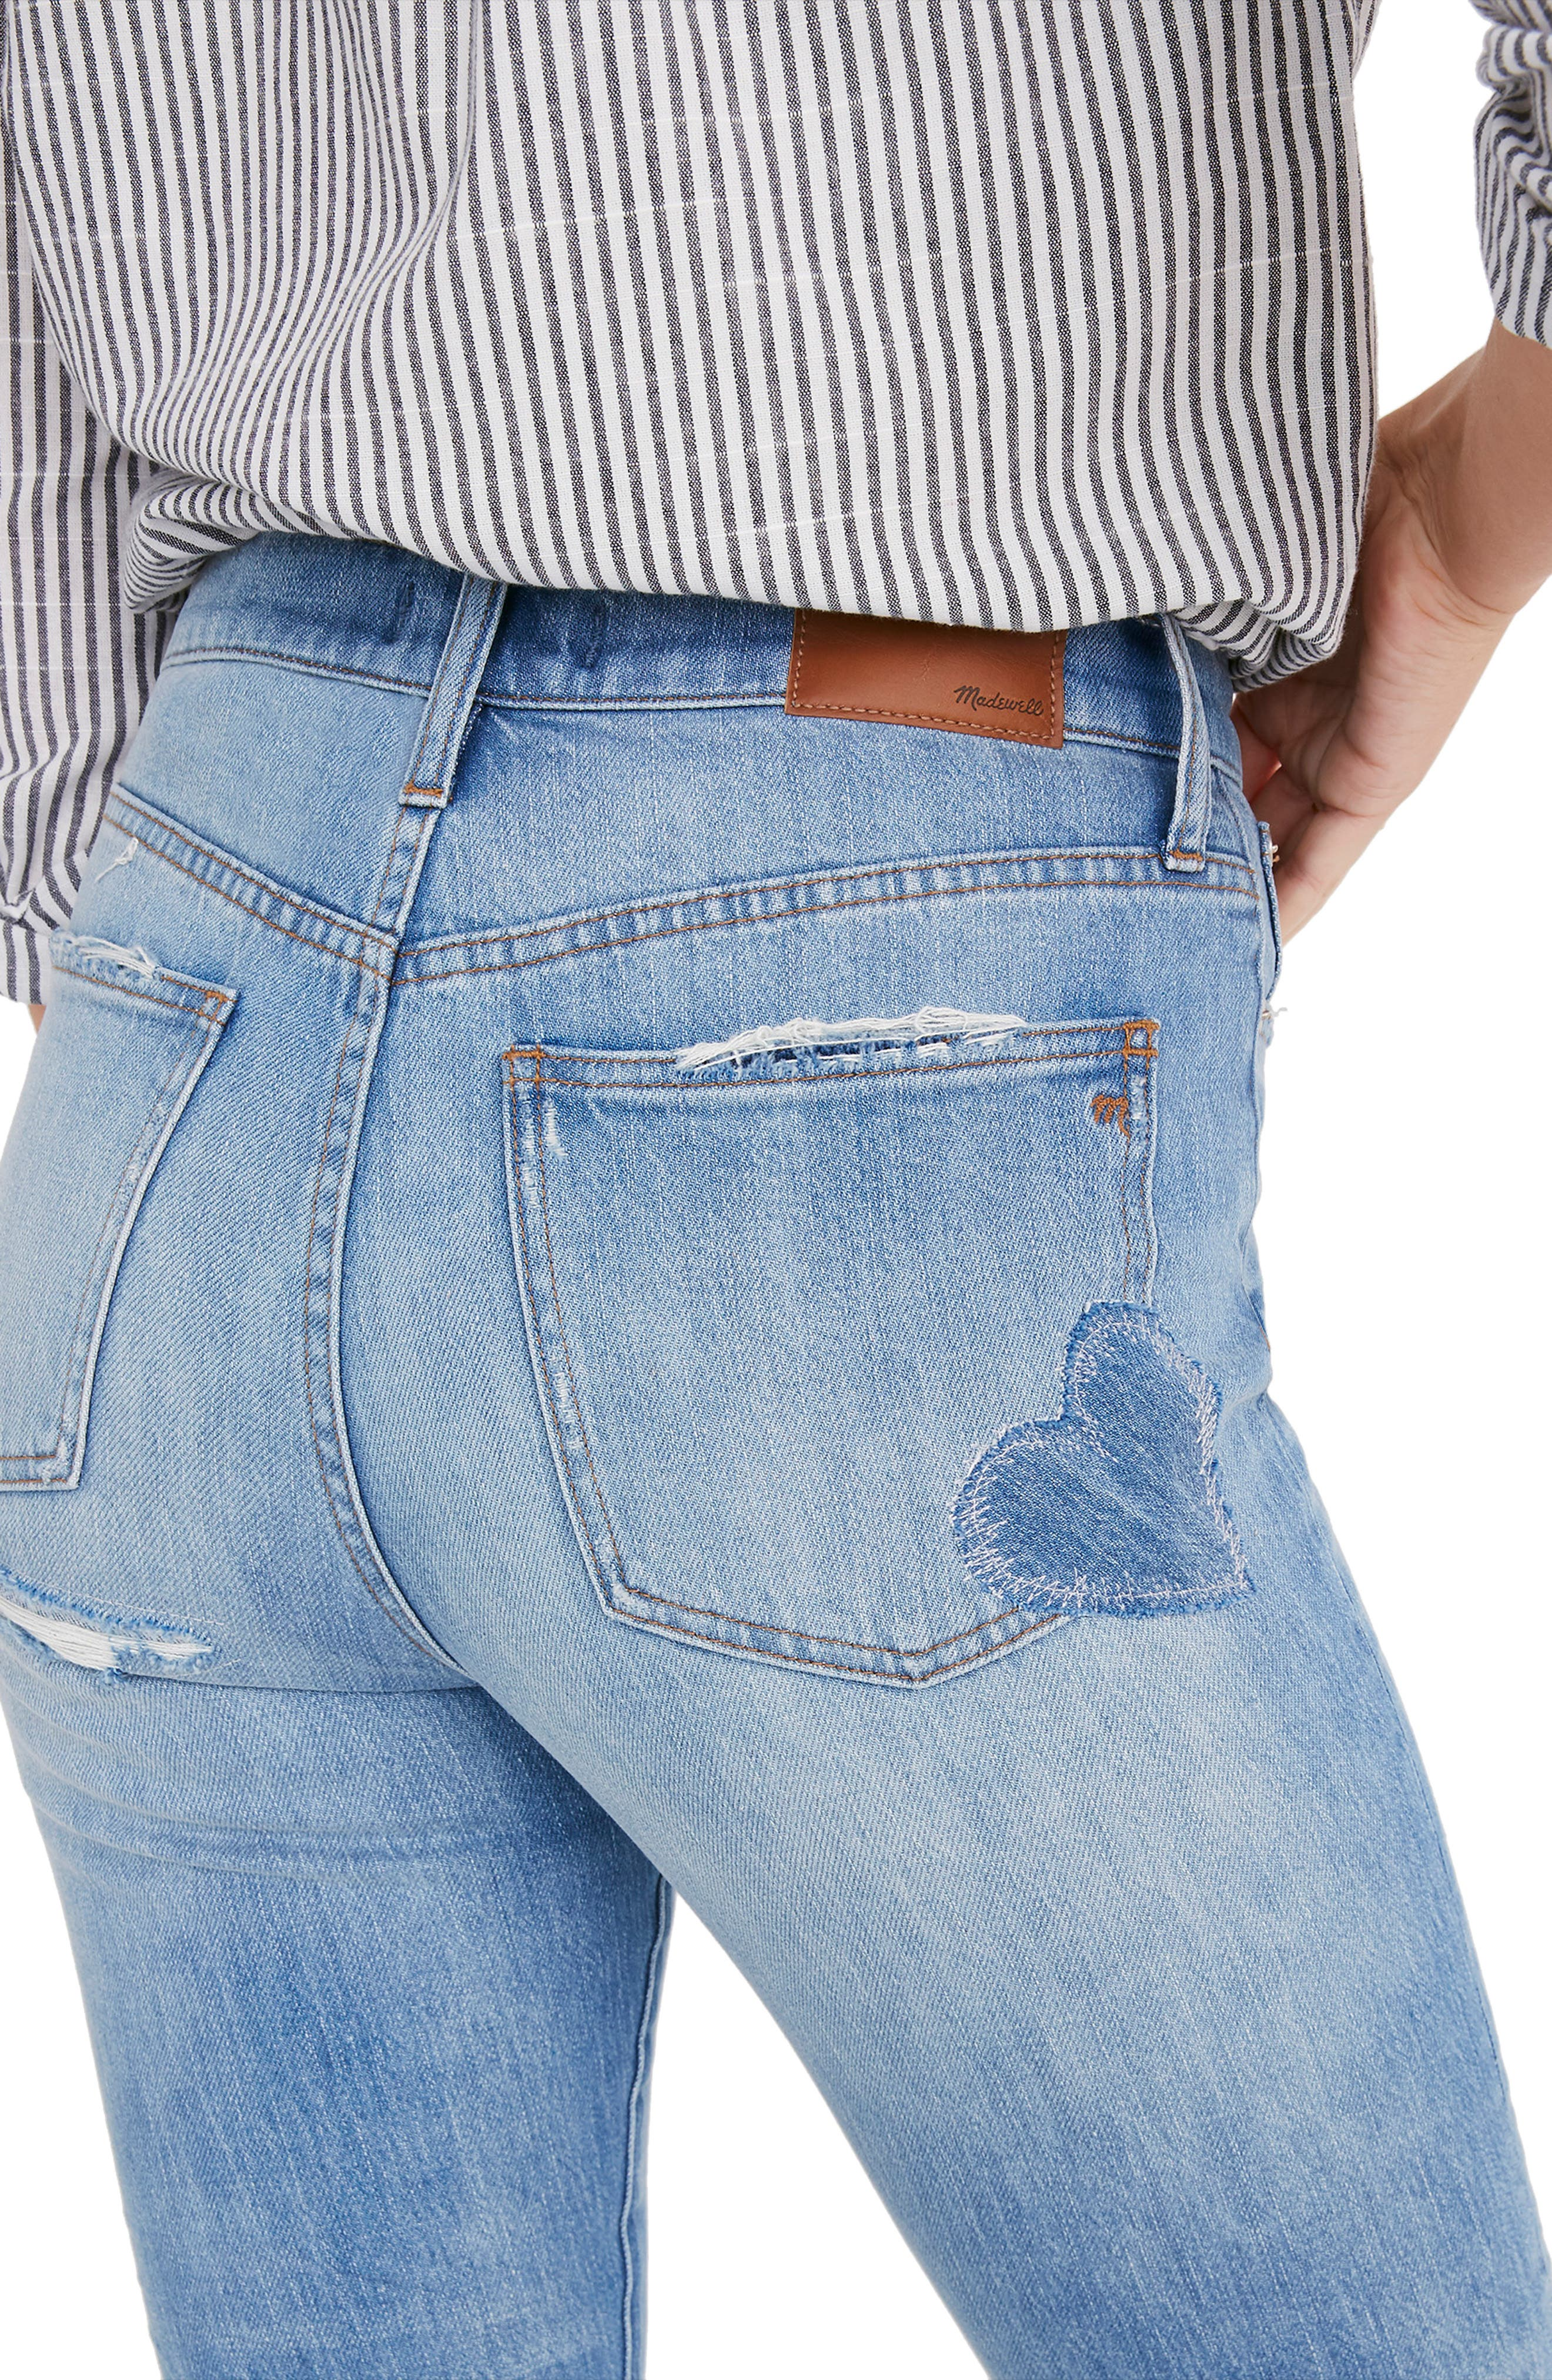 MADEWELL, The Perfect Vintage Heart Patch High Waist Jeans, Alternate thumbnail 5, color, ATWATER WASH